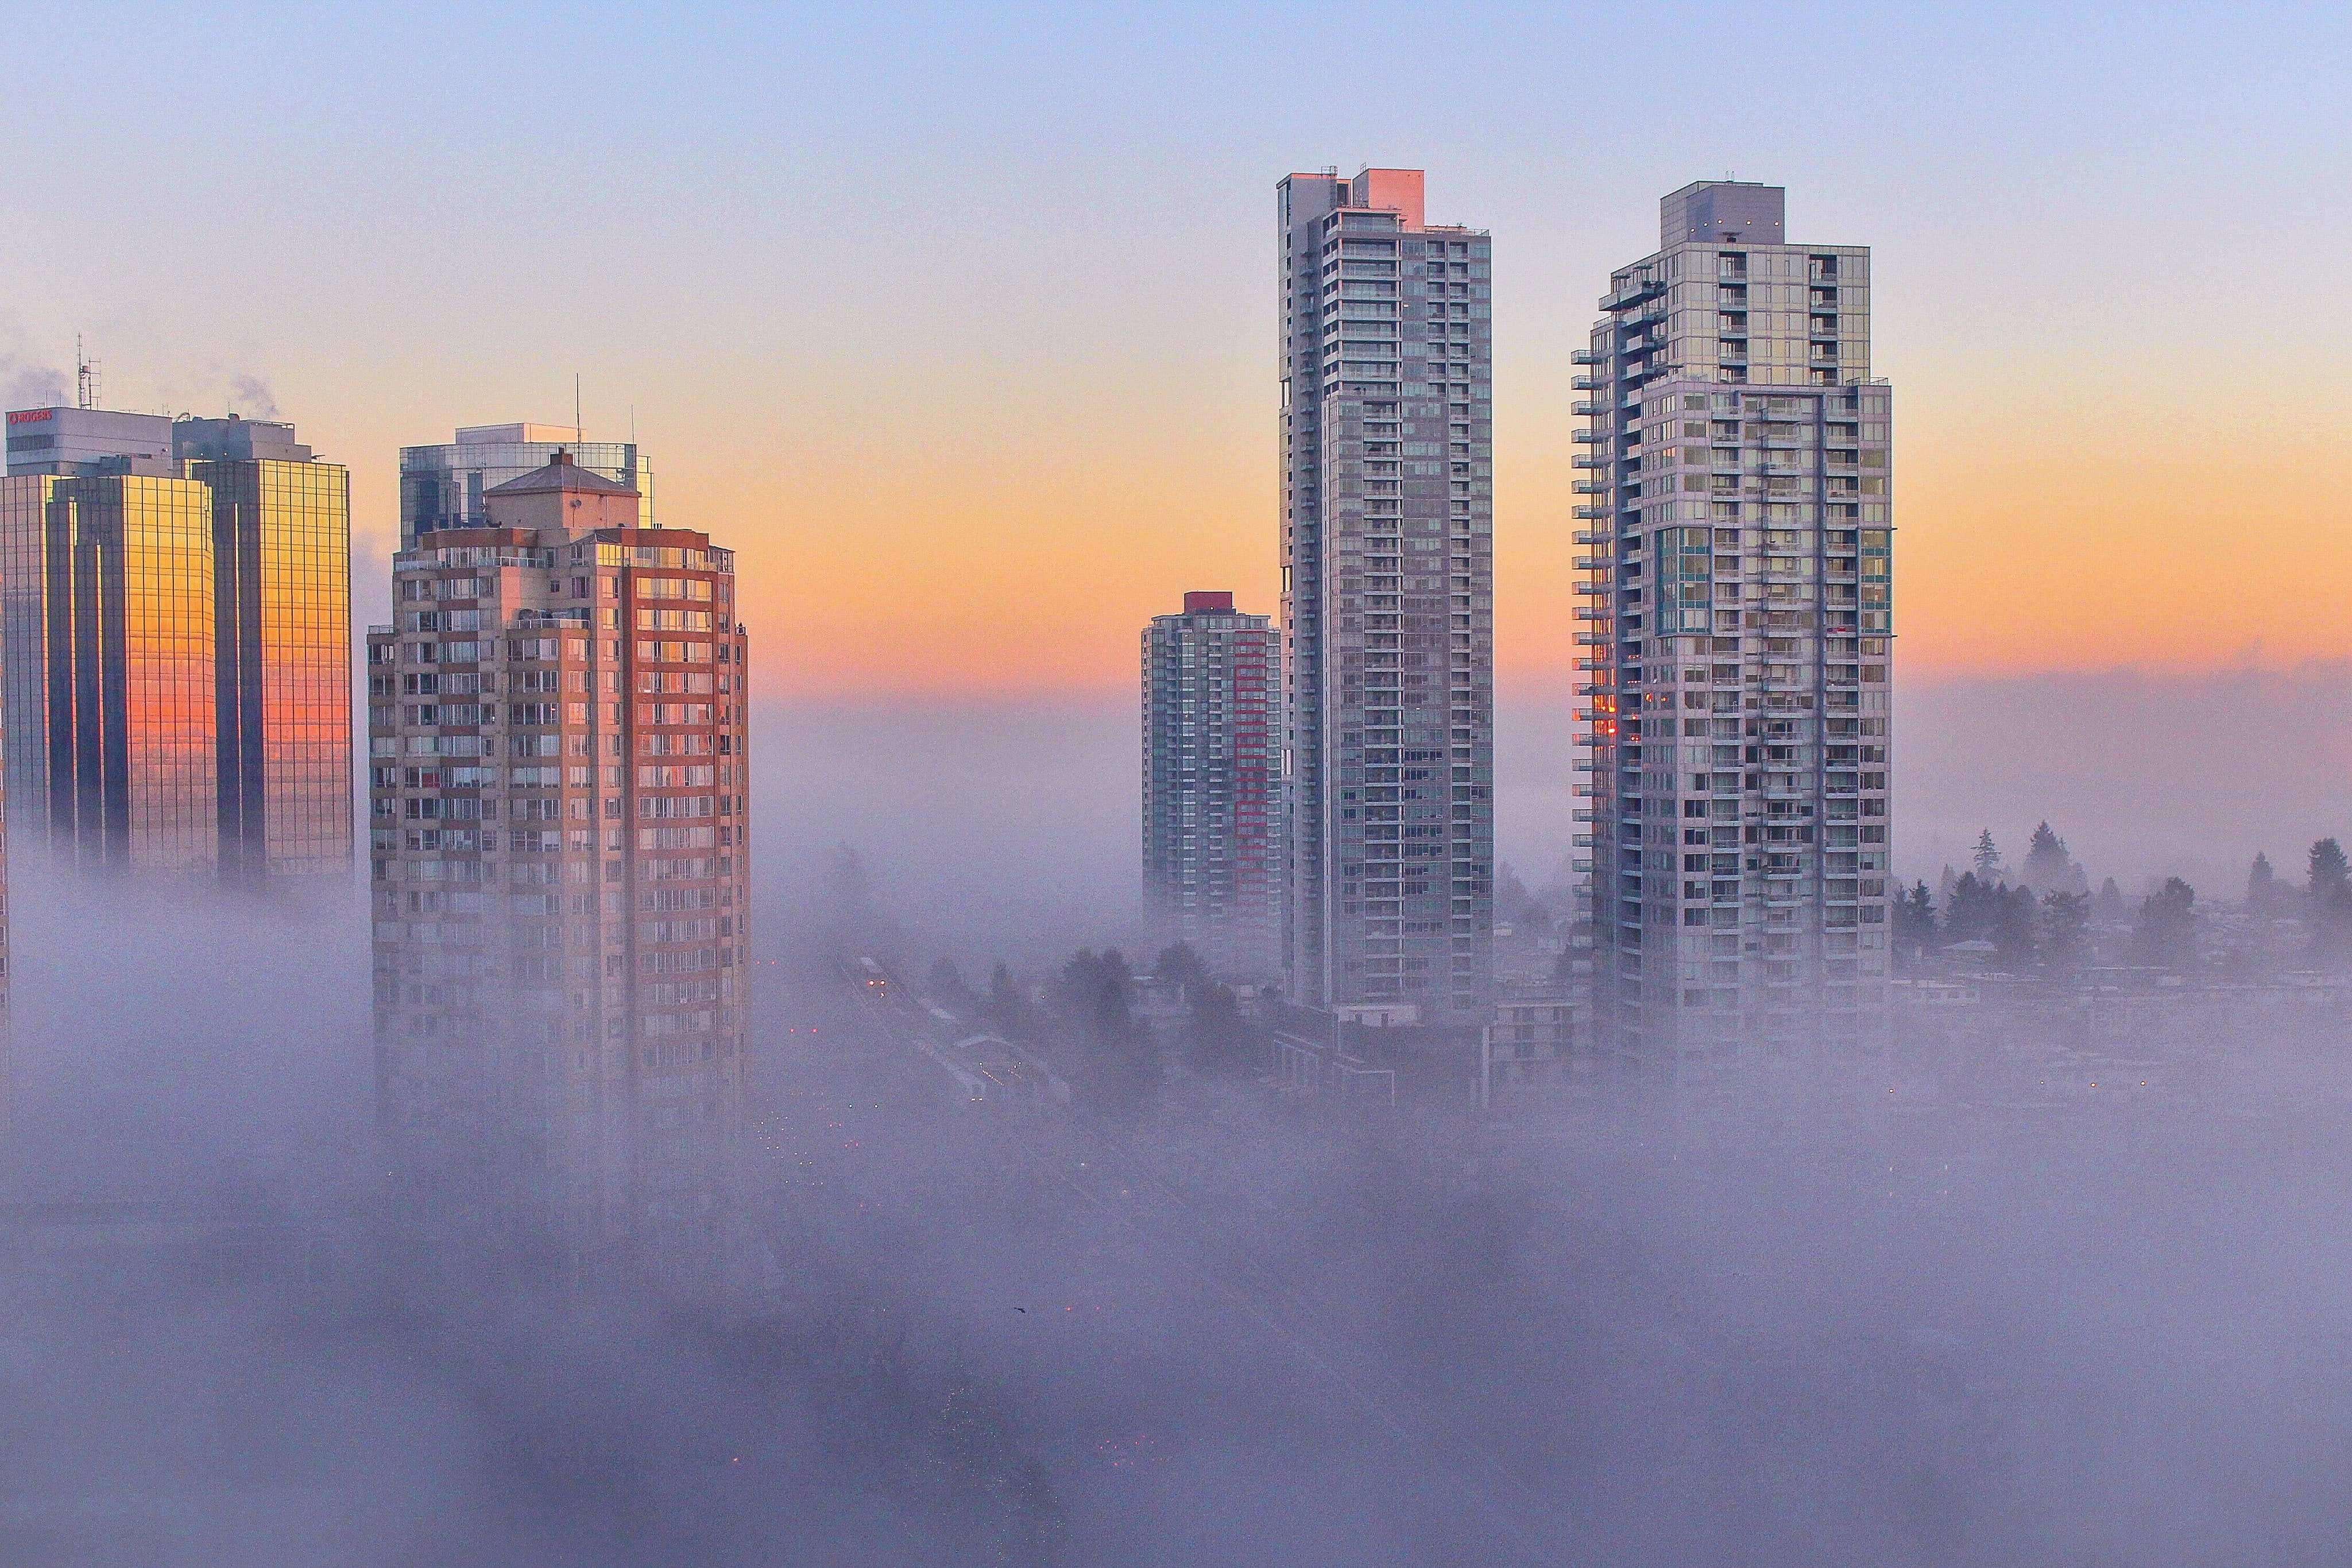 high-rise buildings surrounded by fog